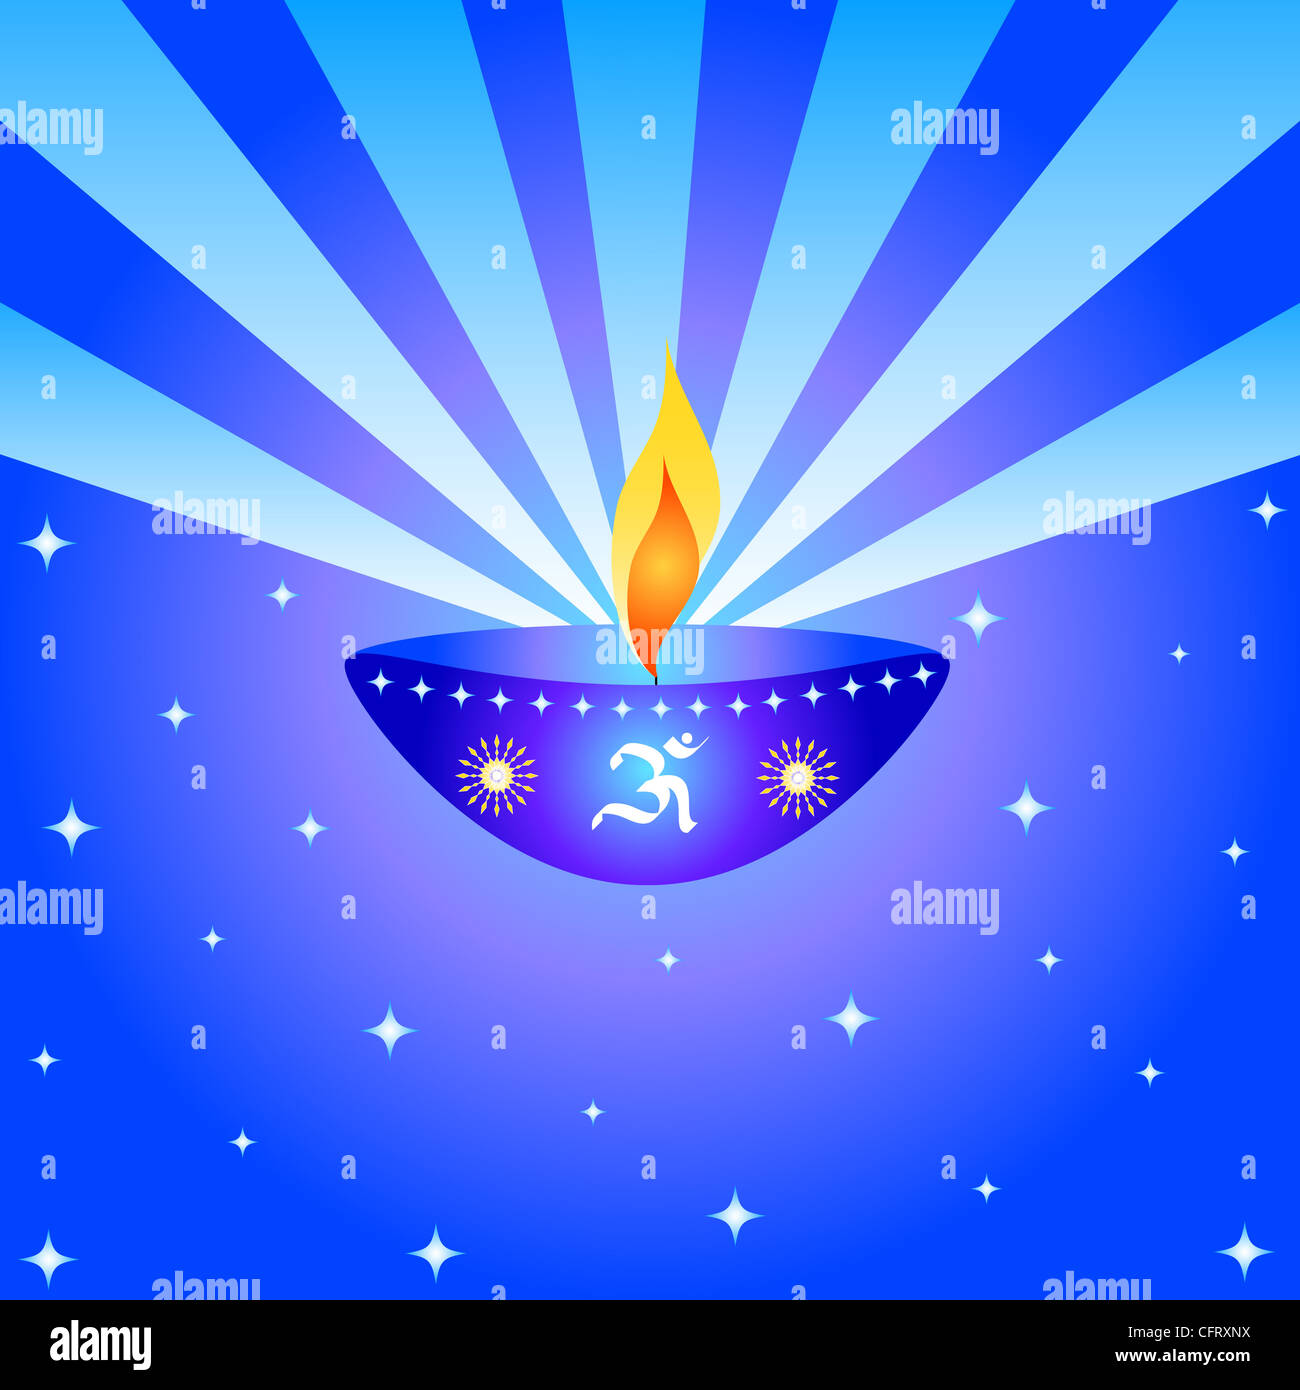 Indian festival Diwali lamp with OM symbol and rays Stock Photo